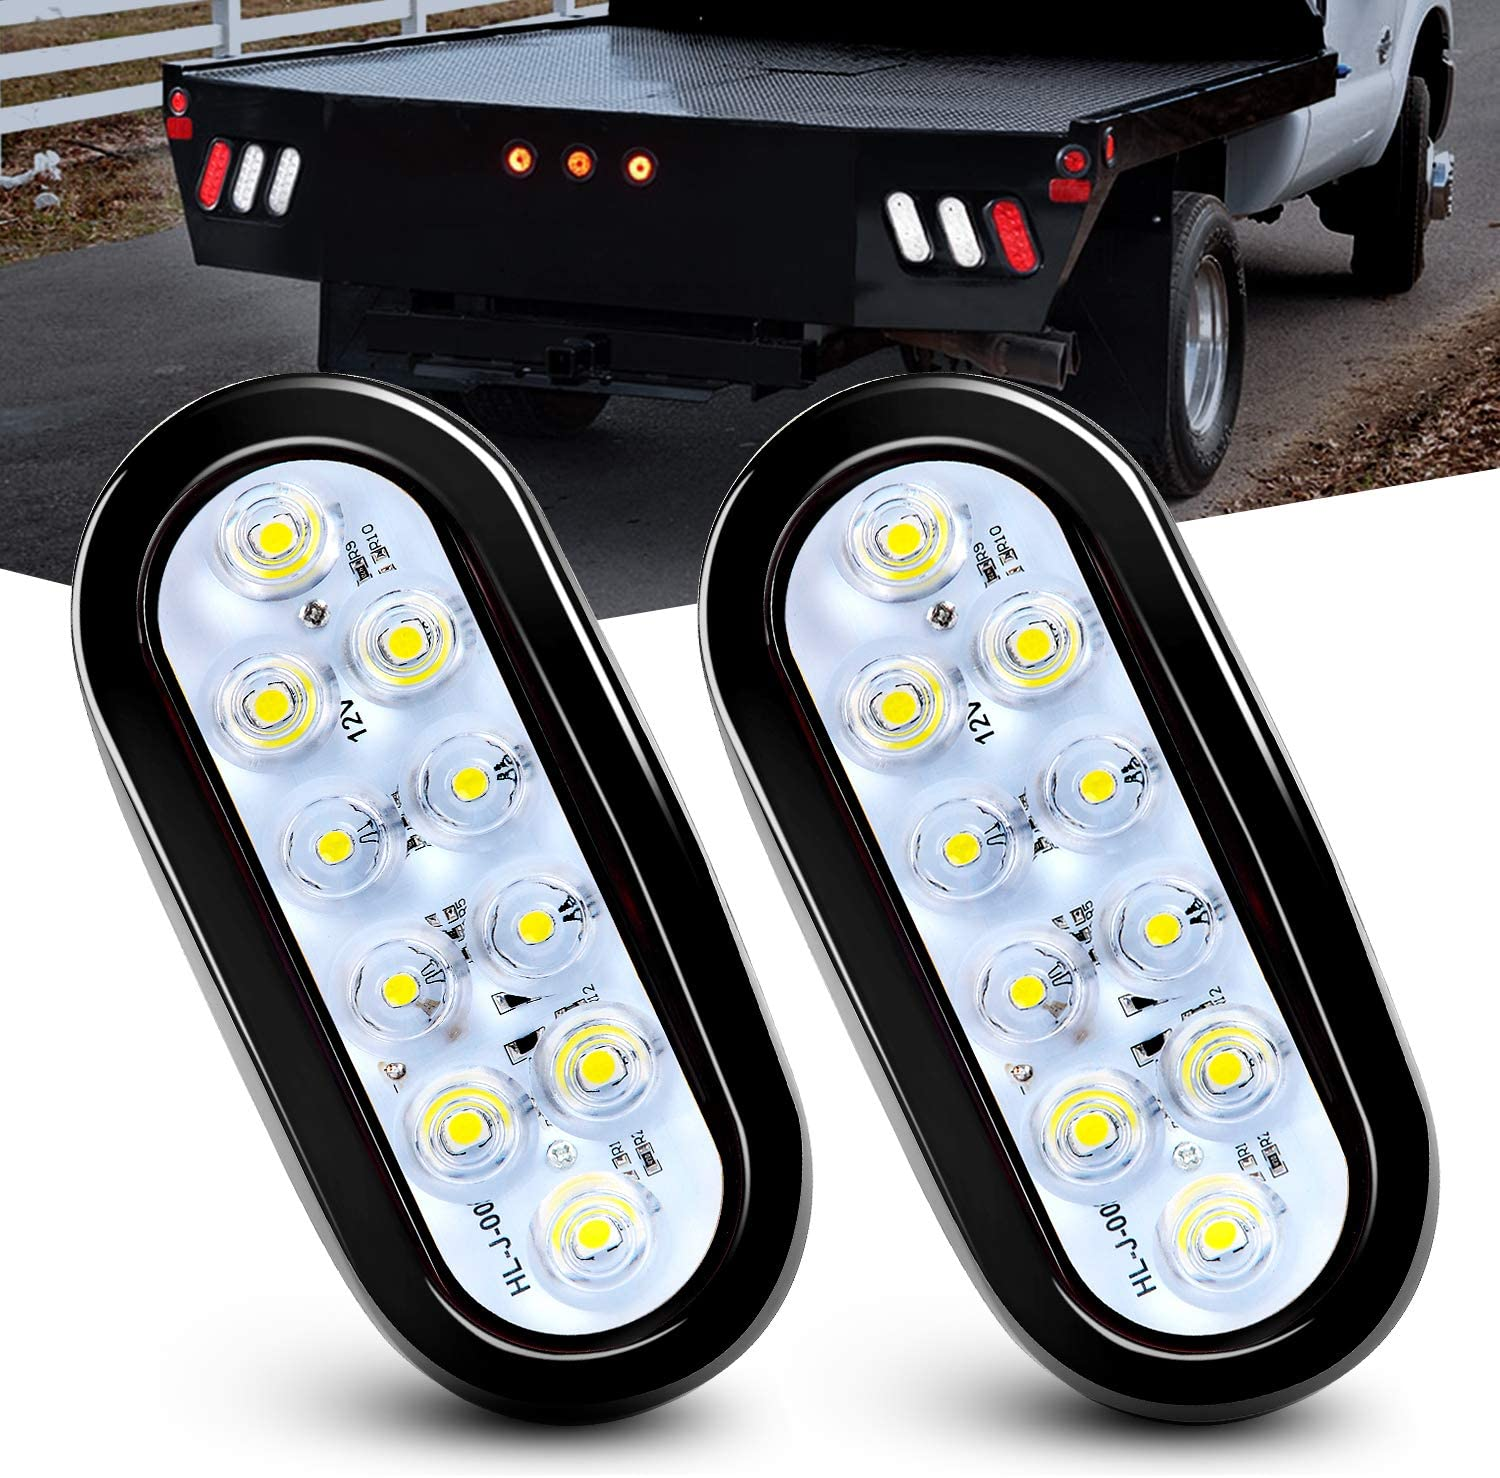 2 Years Warranty Nilight 6 Oval White LED Trailer Tail Lights 2PCS 10 LED w//Flush Mount Grommets Plugs IP67 Waterproof Reverse//Back Up Trailer Lights for RV Truck Jeep